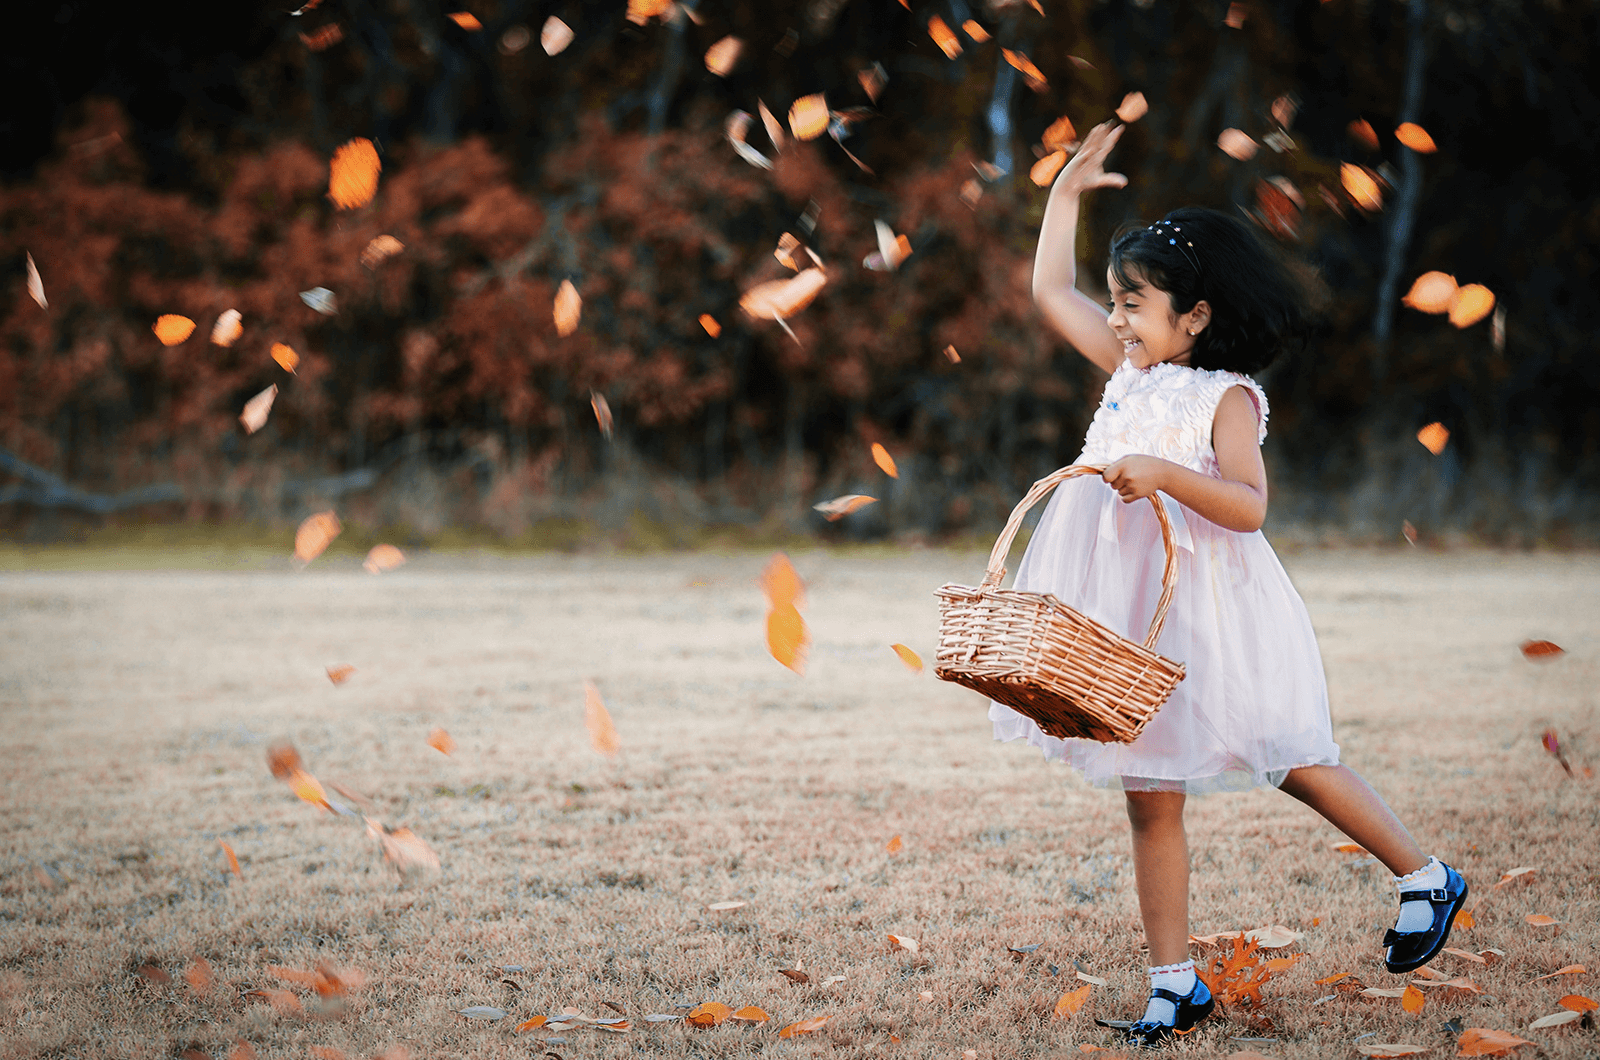 Little girl holding basket and throwing leaves in the air